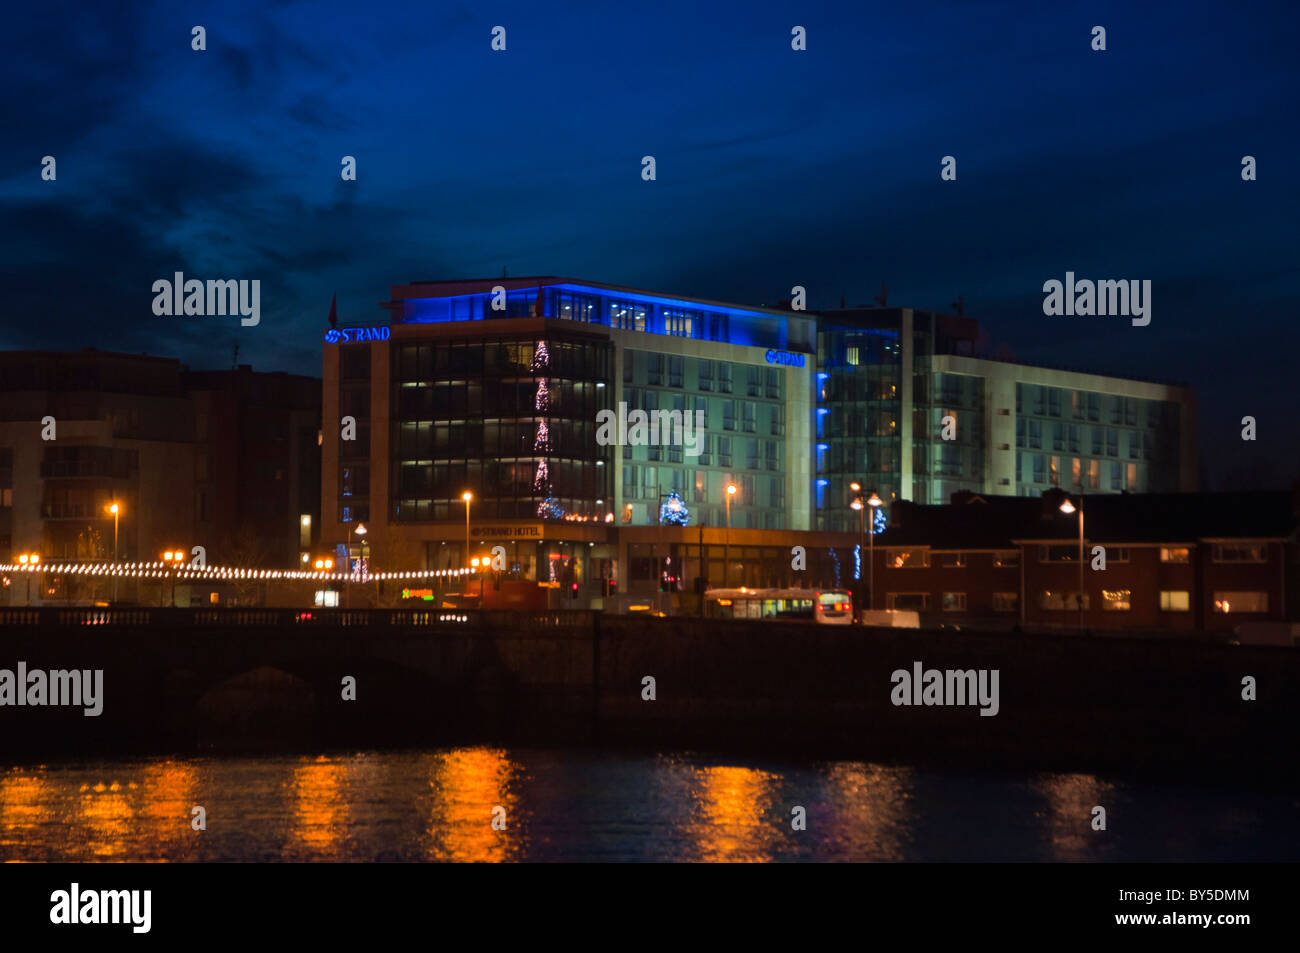 The 5 star Strand hotel on the banks of the river Shannon in Limerick city, Republic of Ireland Stock Photo